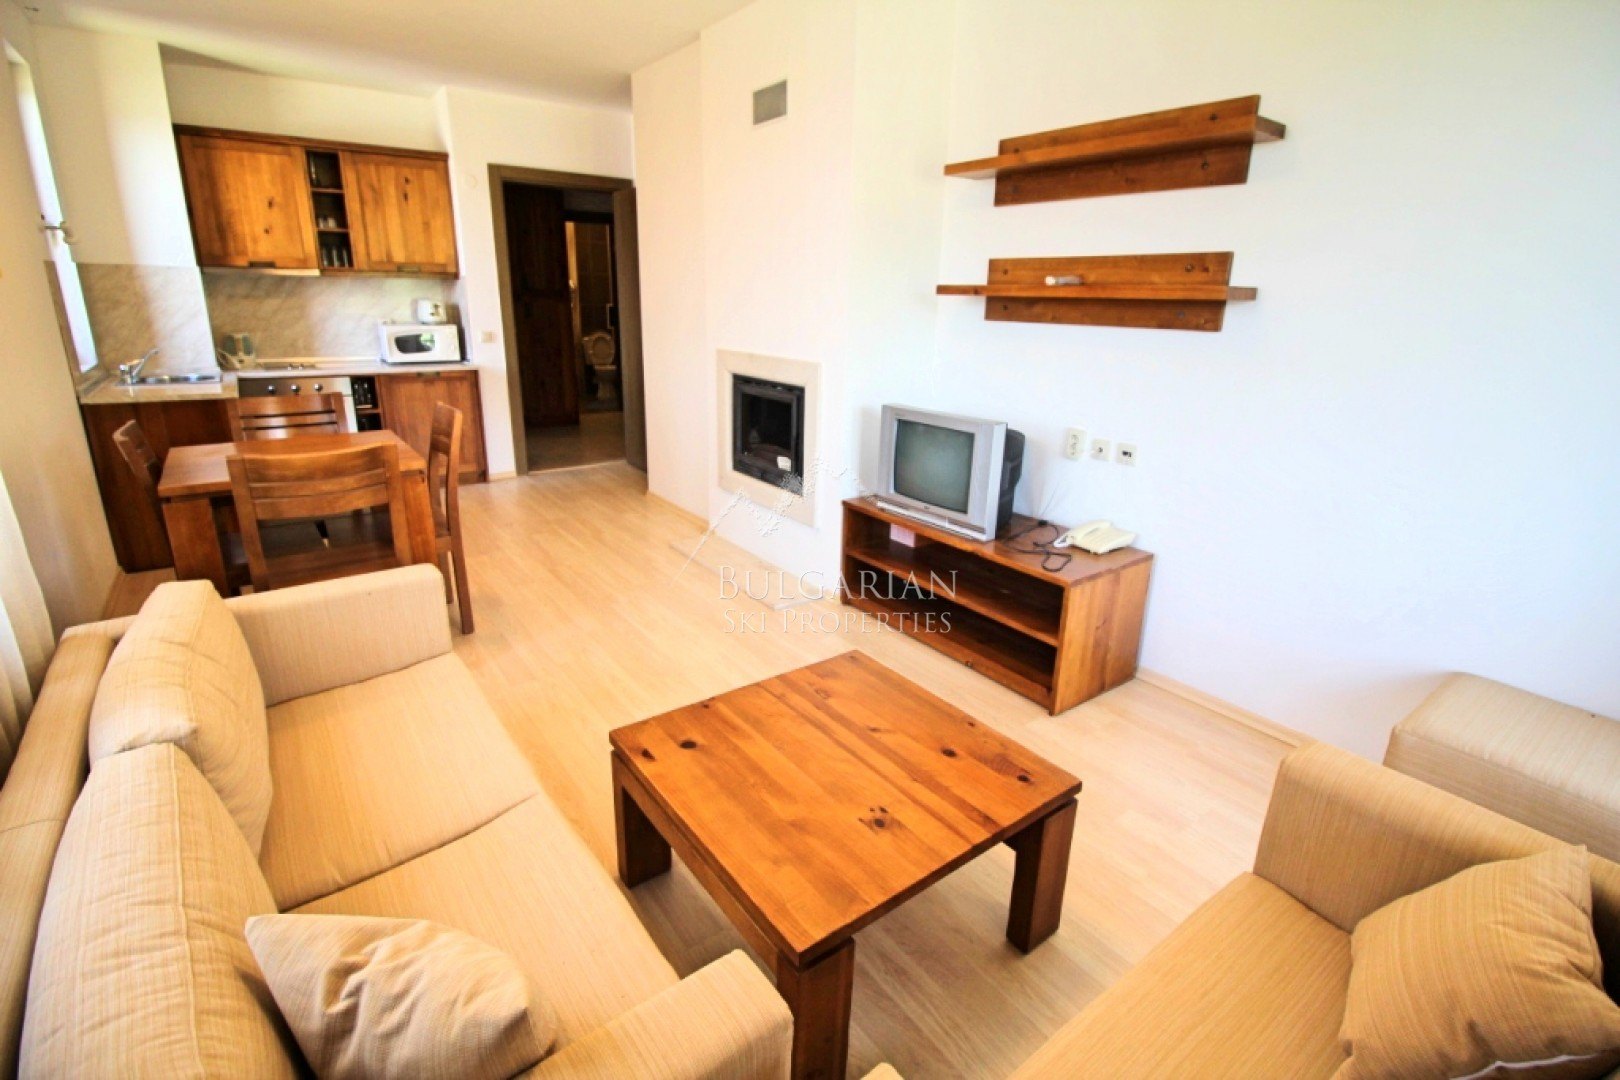 Bansko, St. John Hill: furnished one-bedroom apartment with mountain views for sale